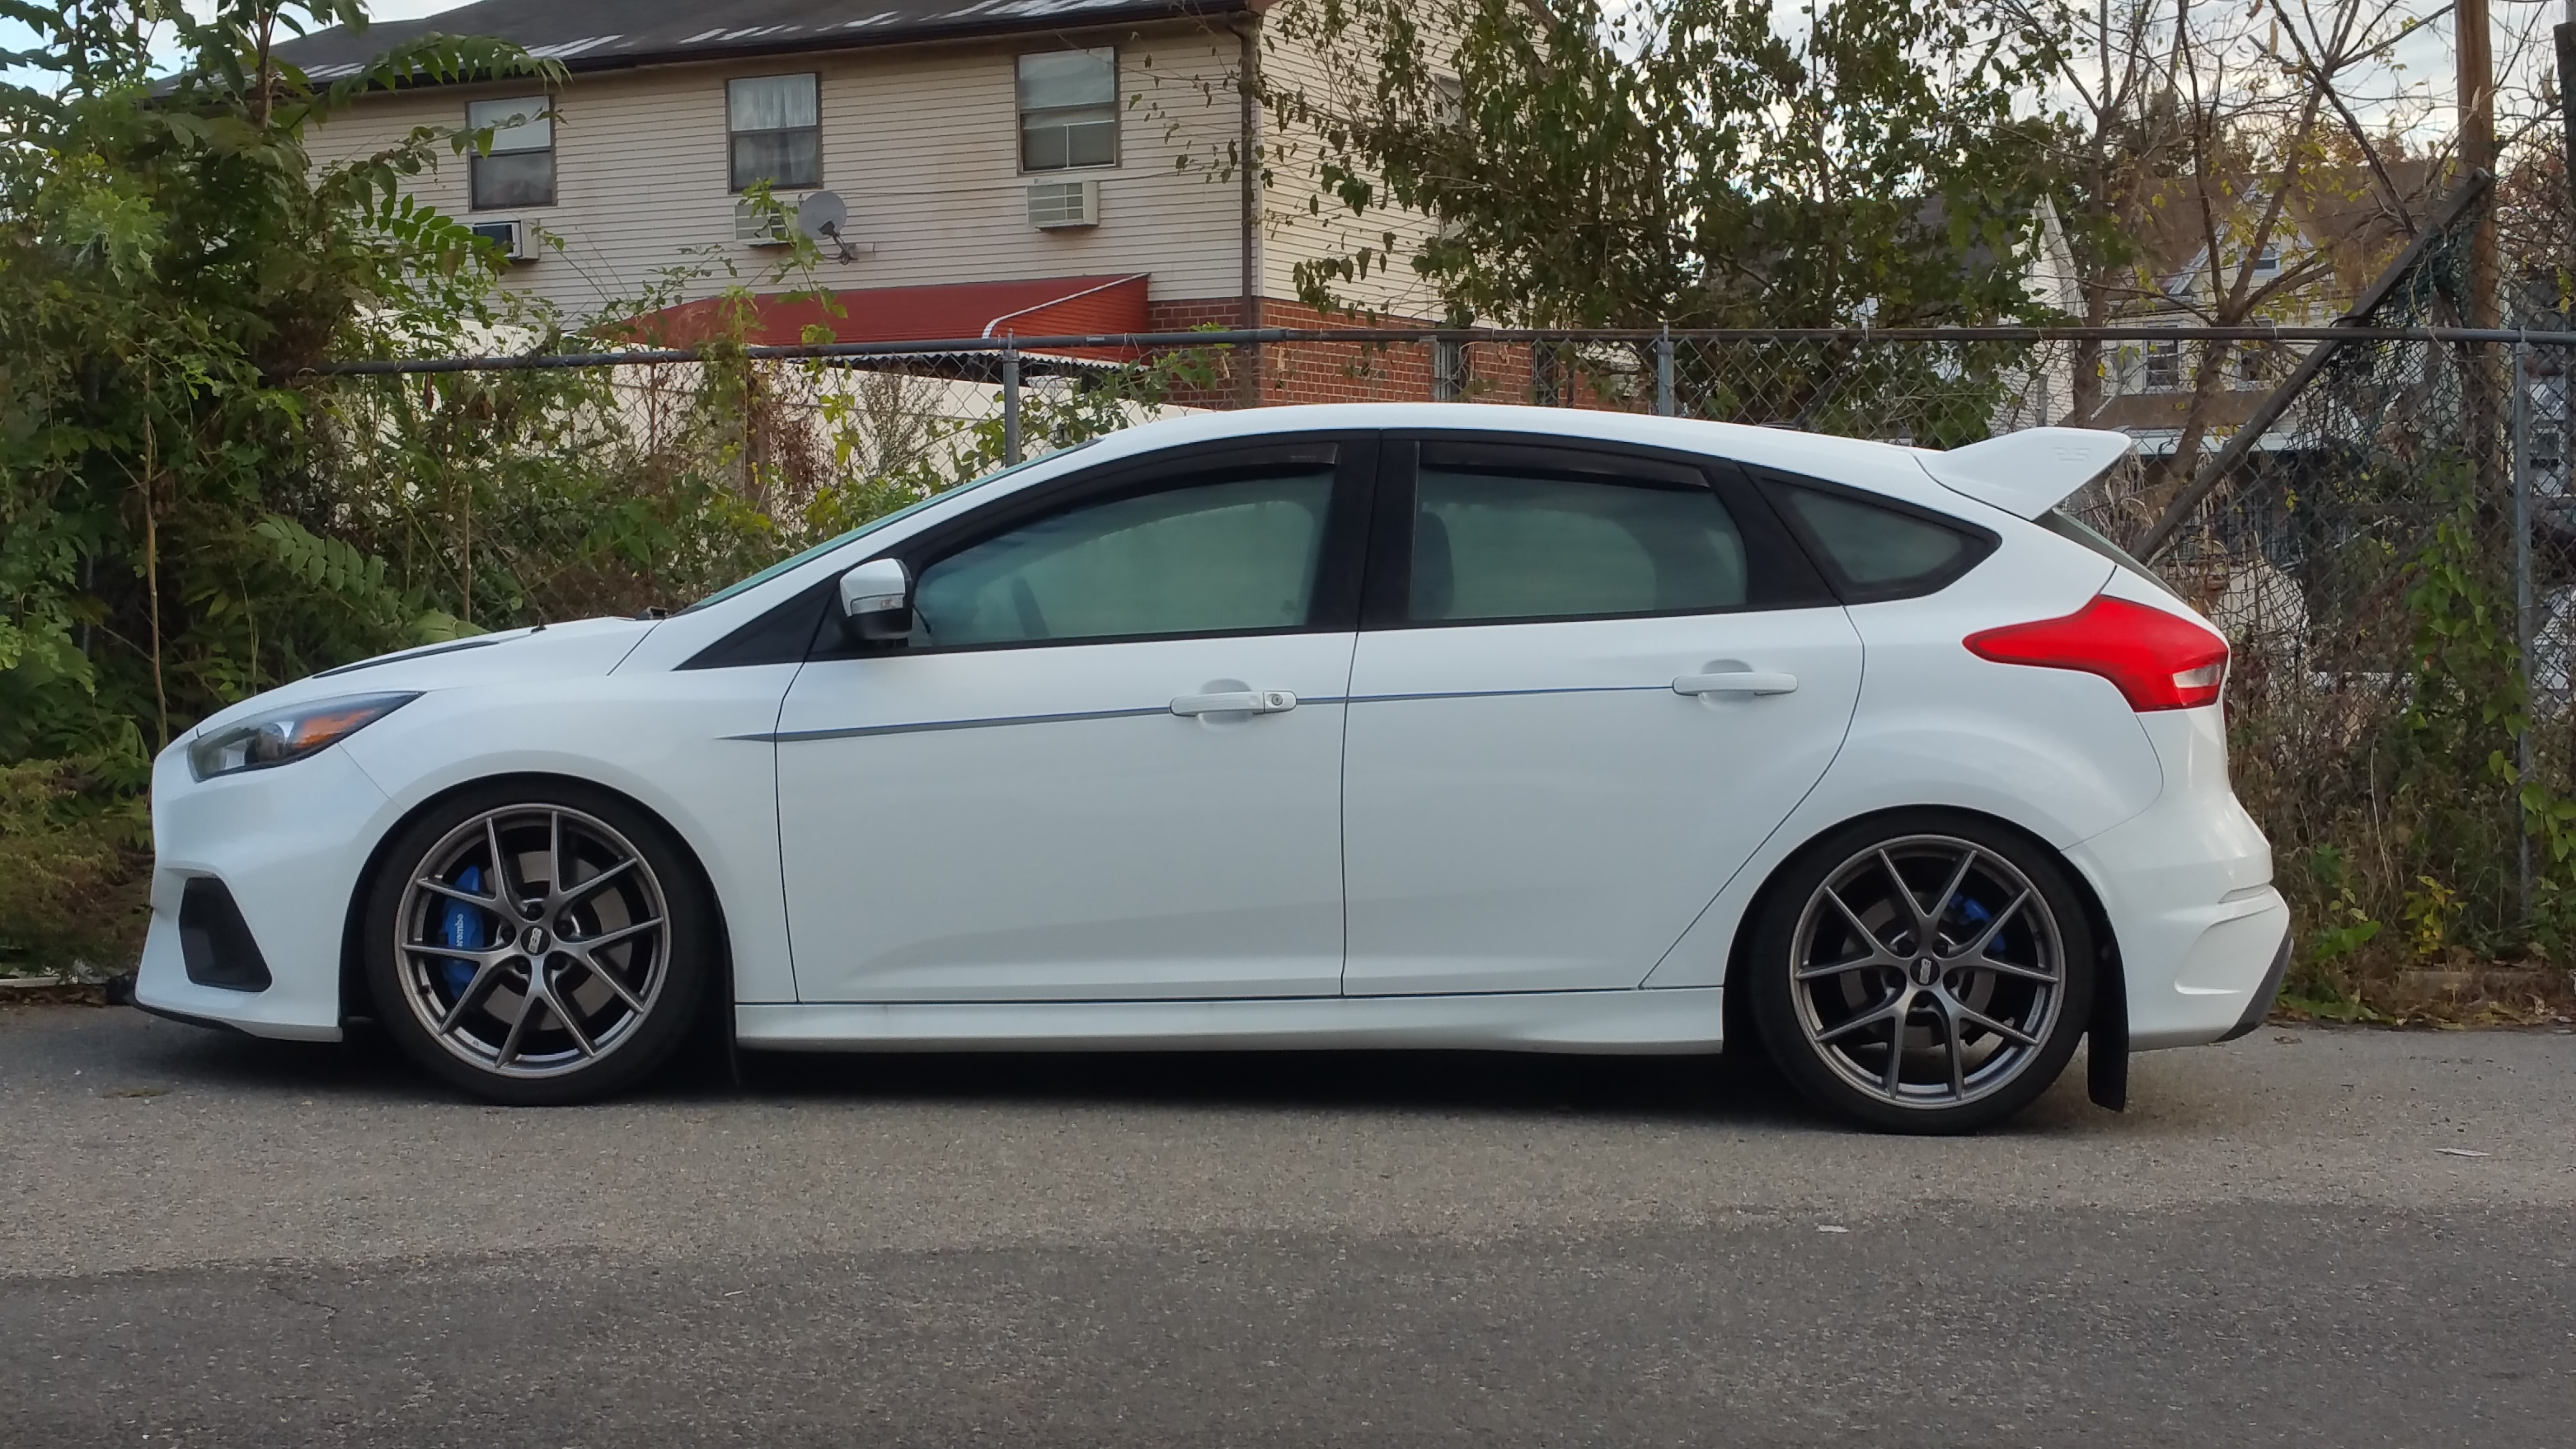 Post Pics of your Ford Focus RS wheel setup! - Page 6